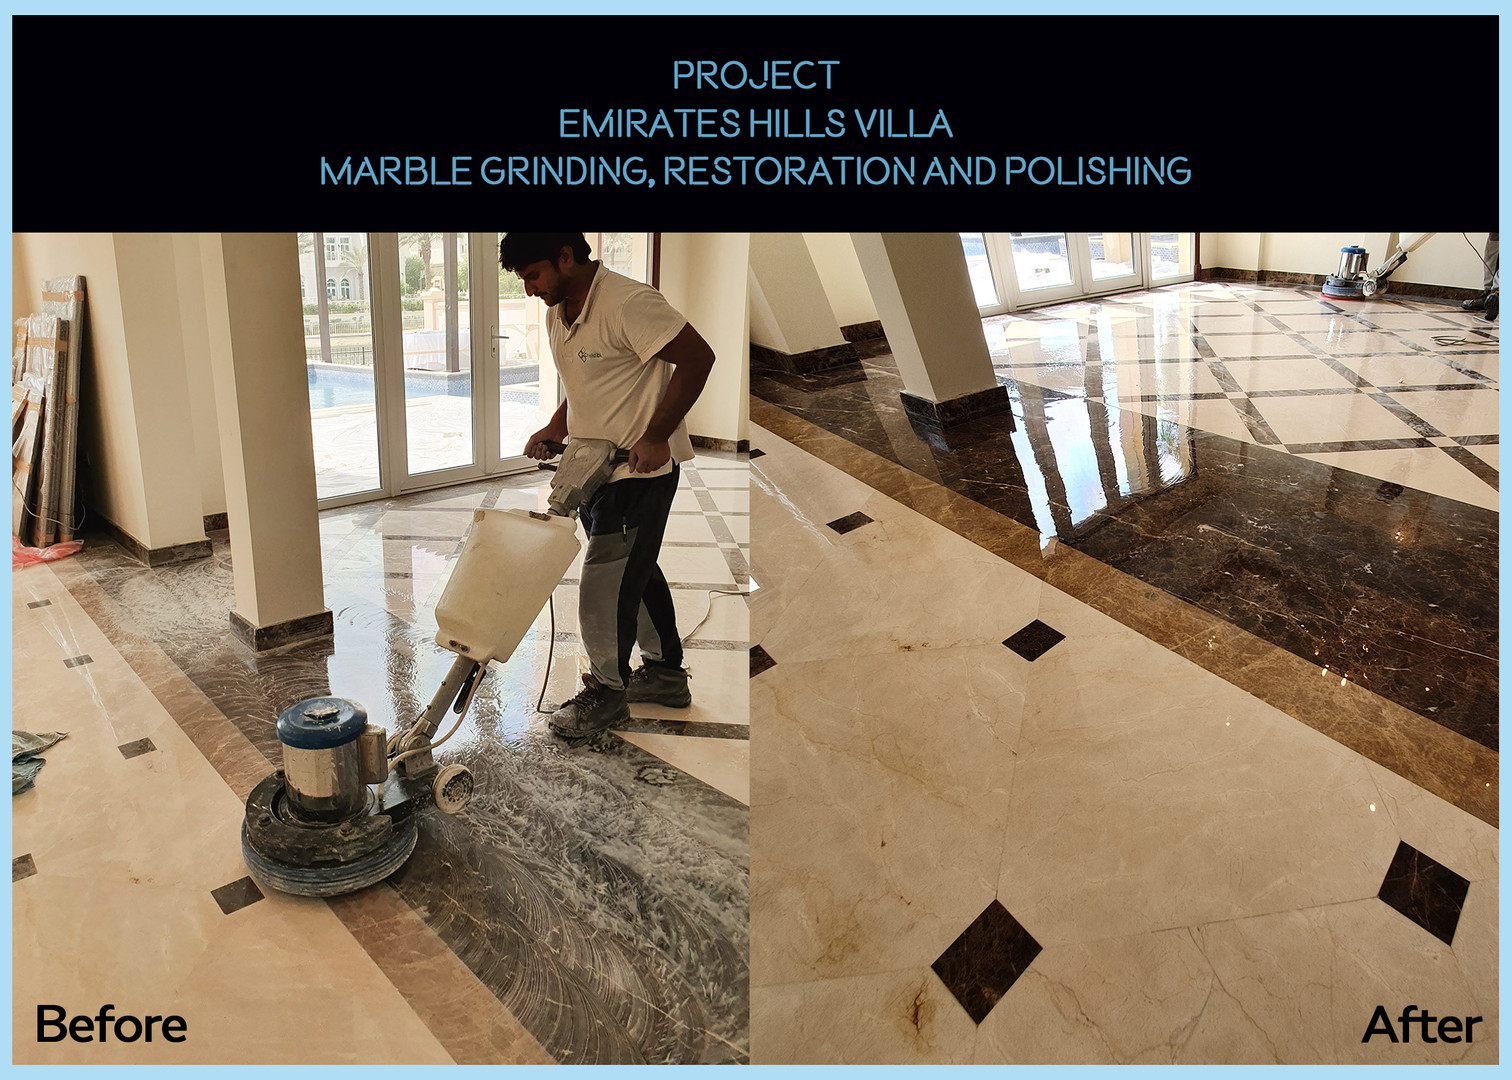 Marble Polishing for Emirates Hills Villa